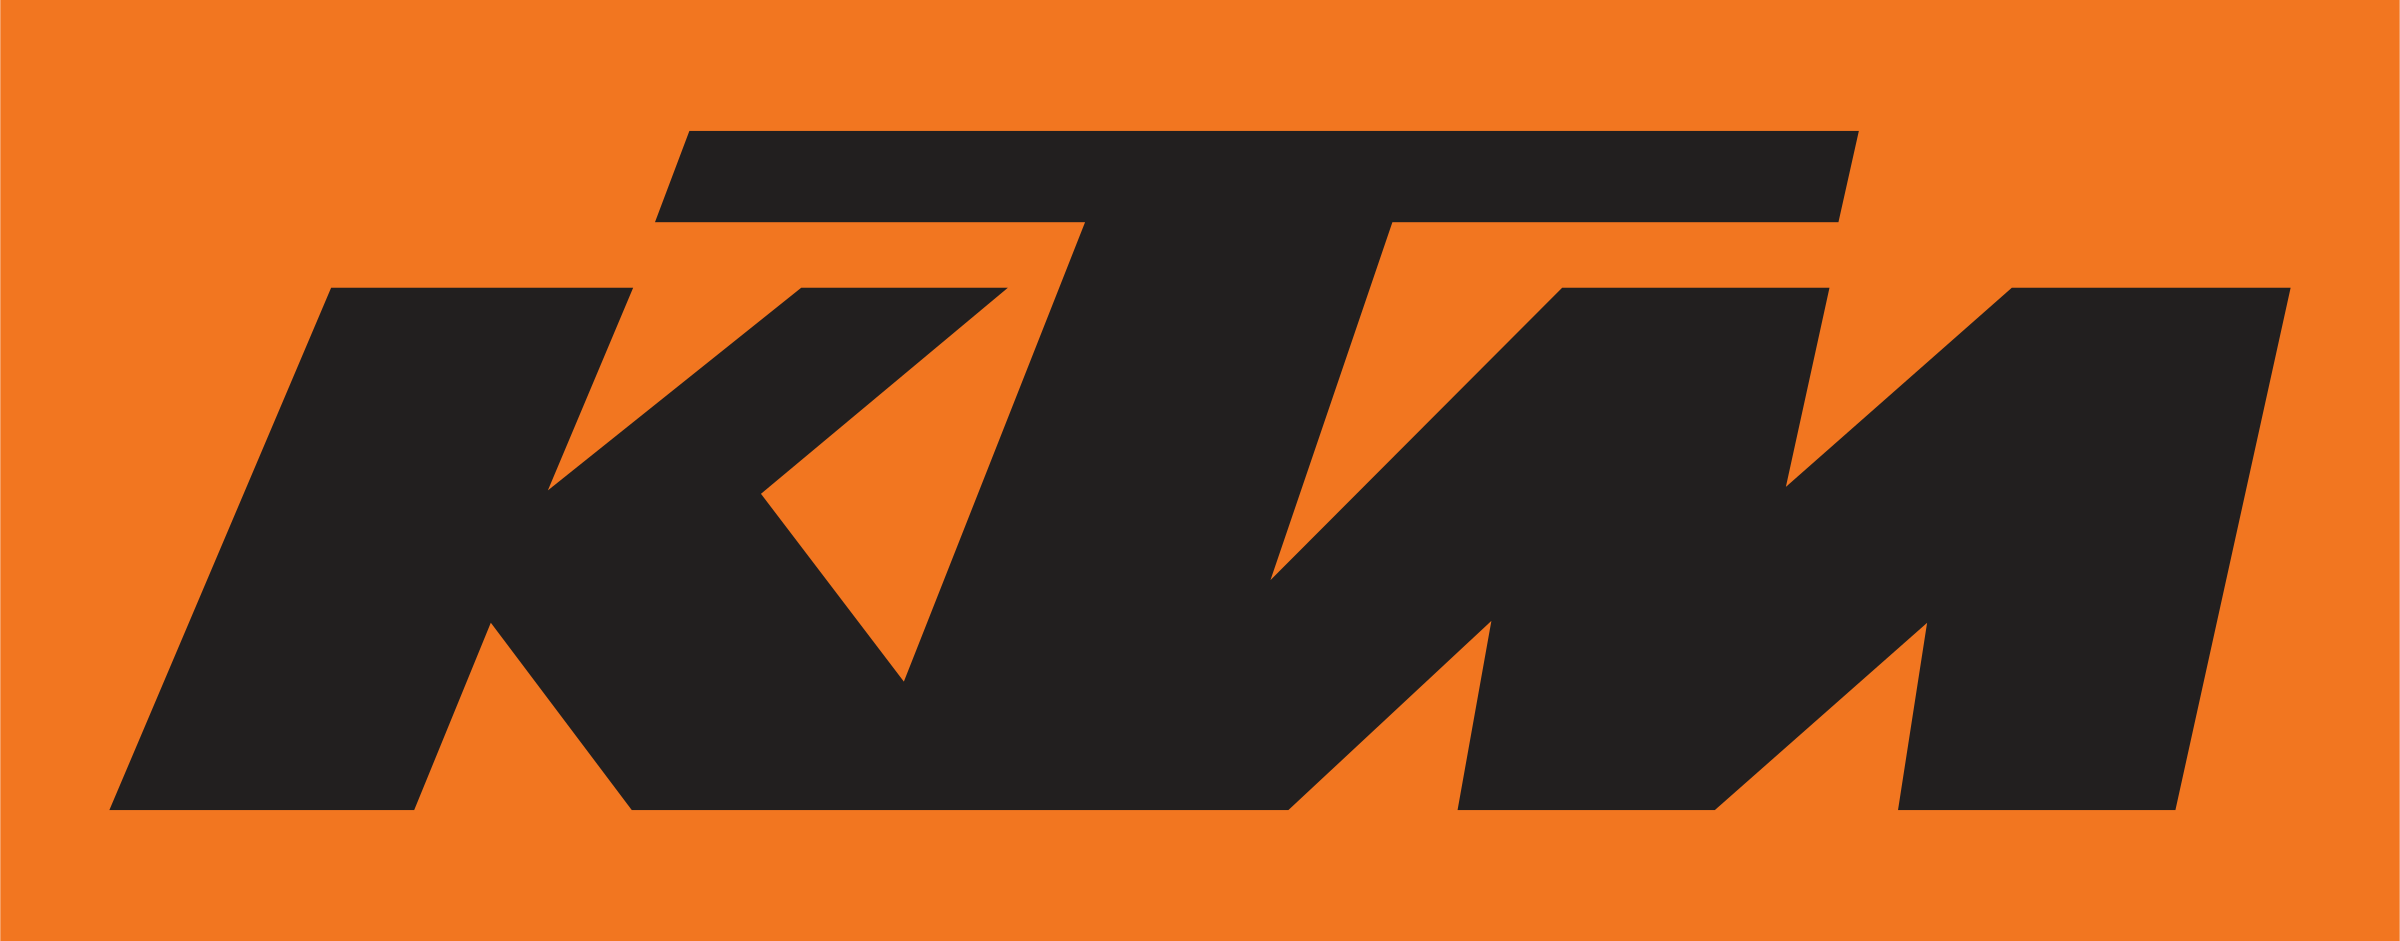 ktm-10-logo-png-transparent